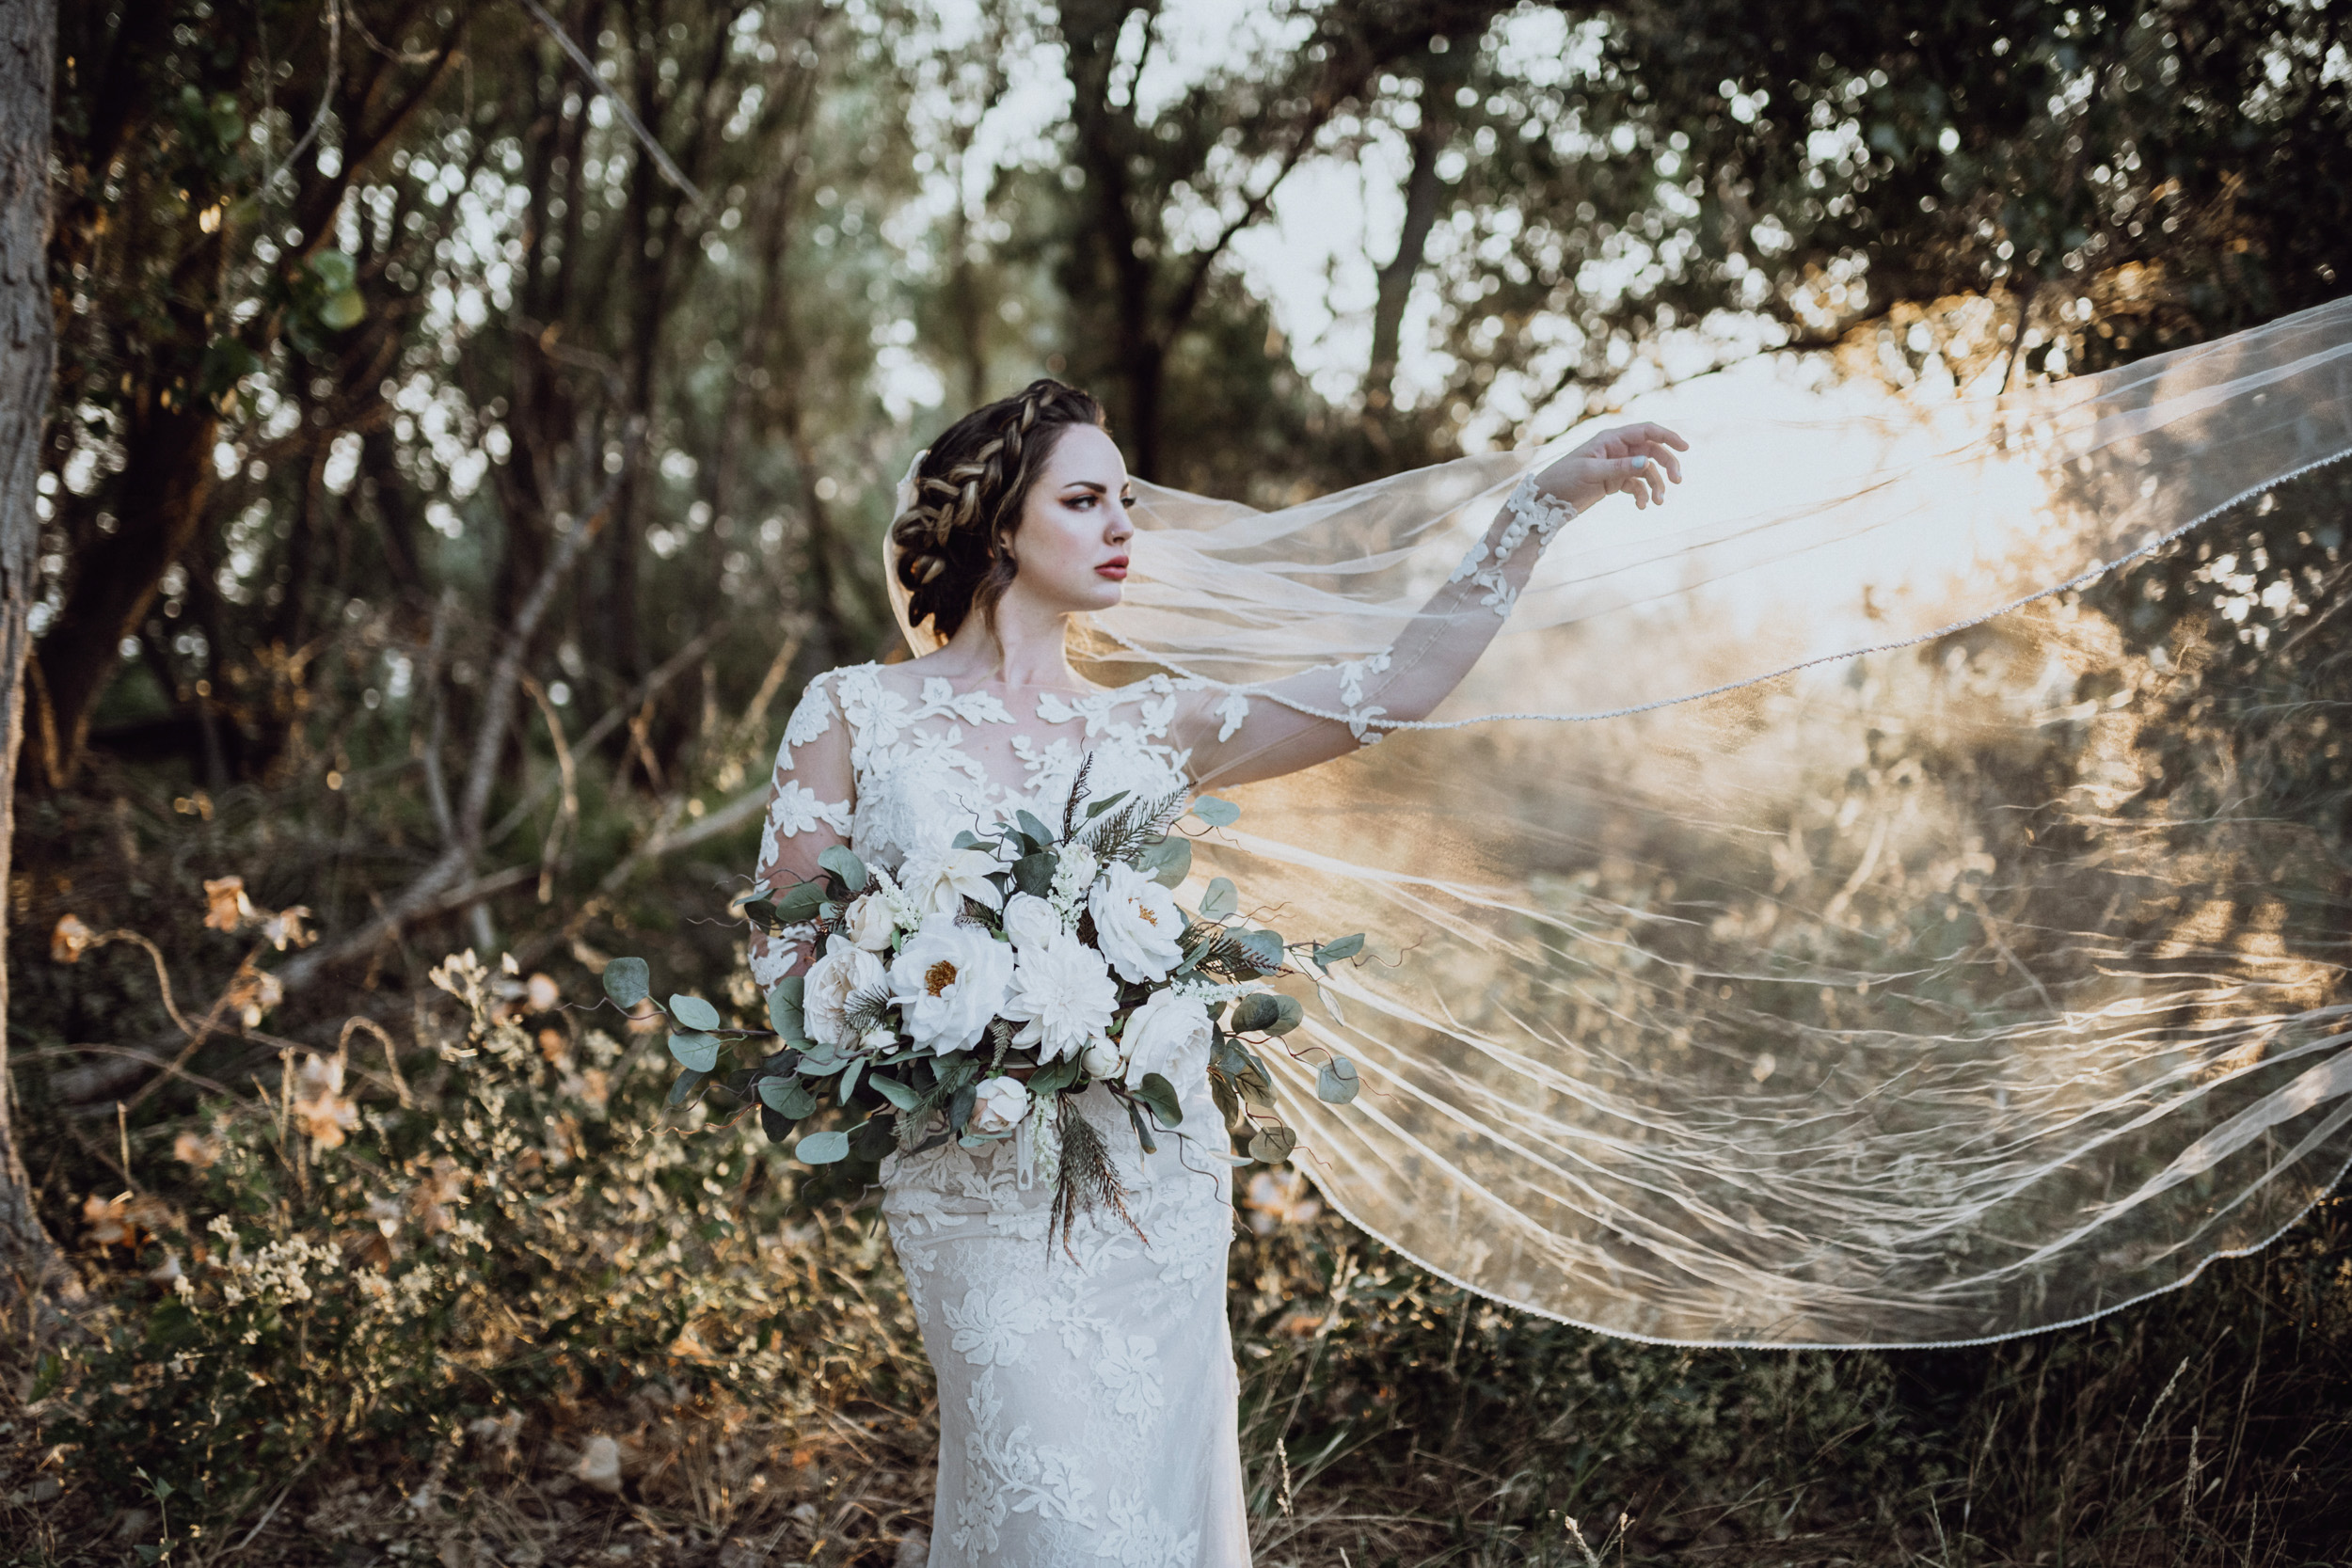 Bride holding bouquet in grassy field at Saratoga Springs